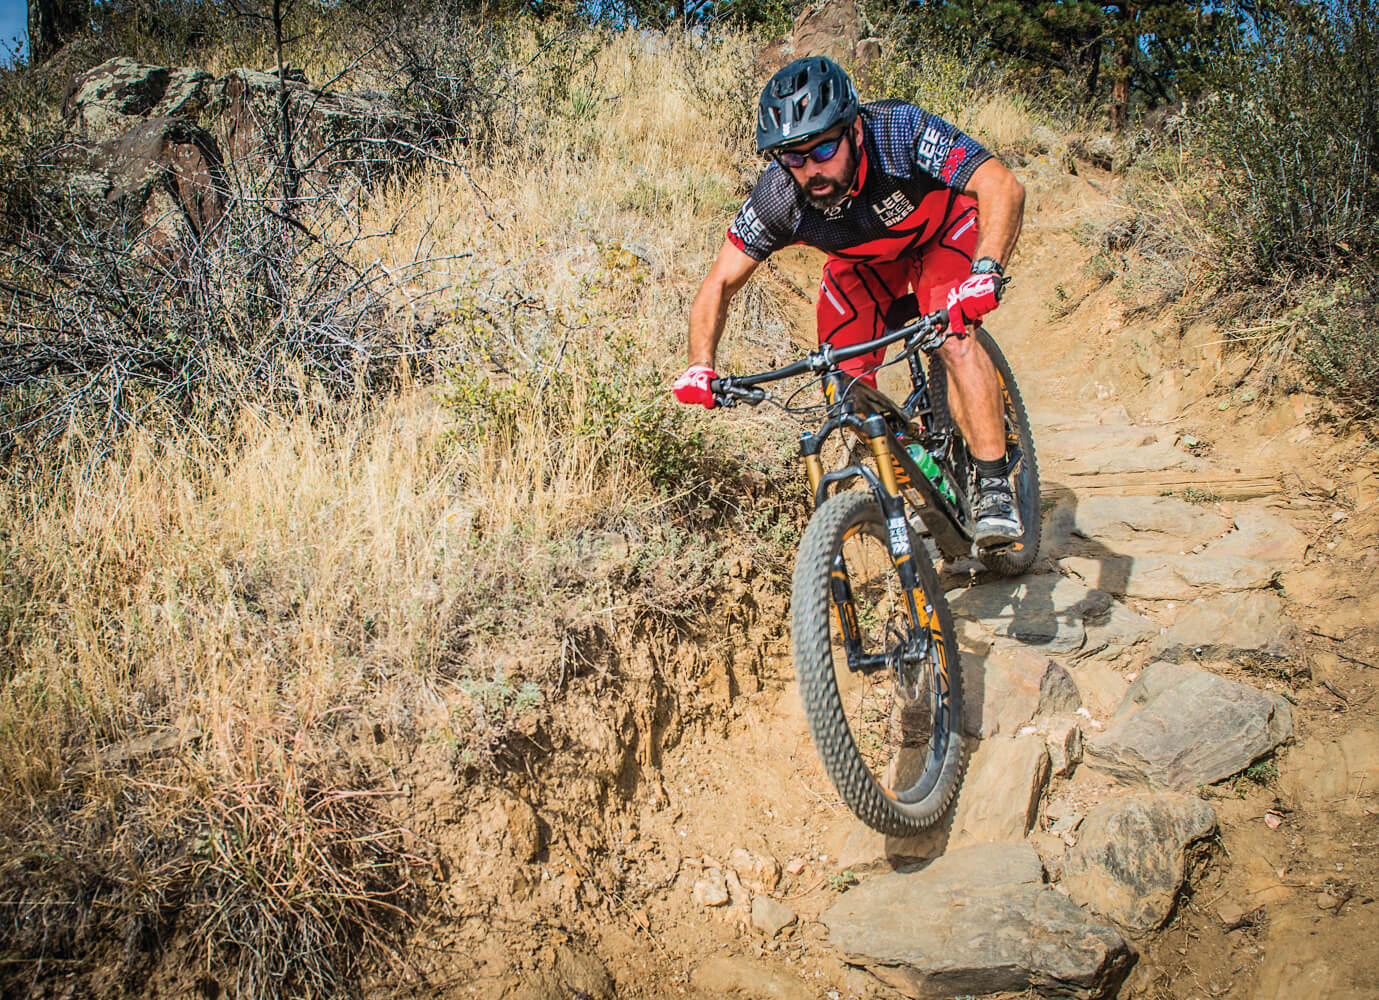 Choosing a mountain bike: An all around trail bike